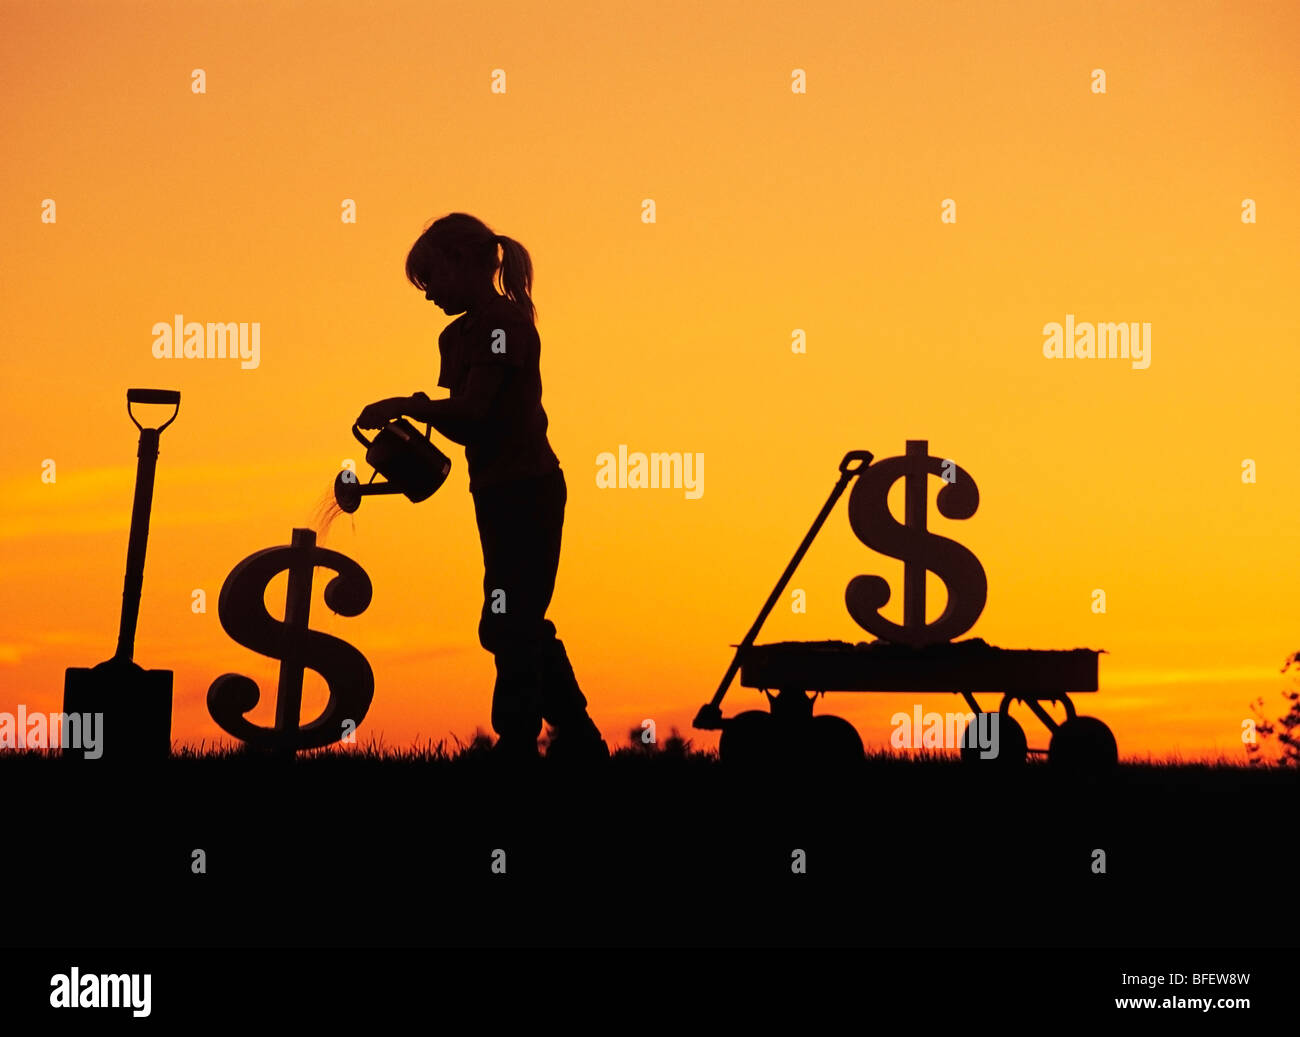 Conceptual of a young girl watering a newly planted dollar sign near Winnipeg, Manitoba, Canada Stock Photo